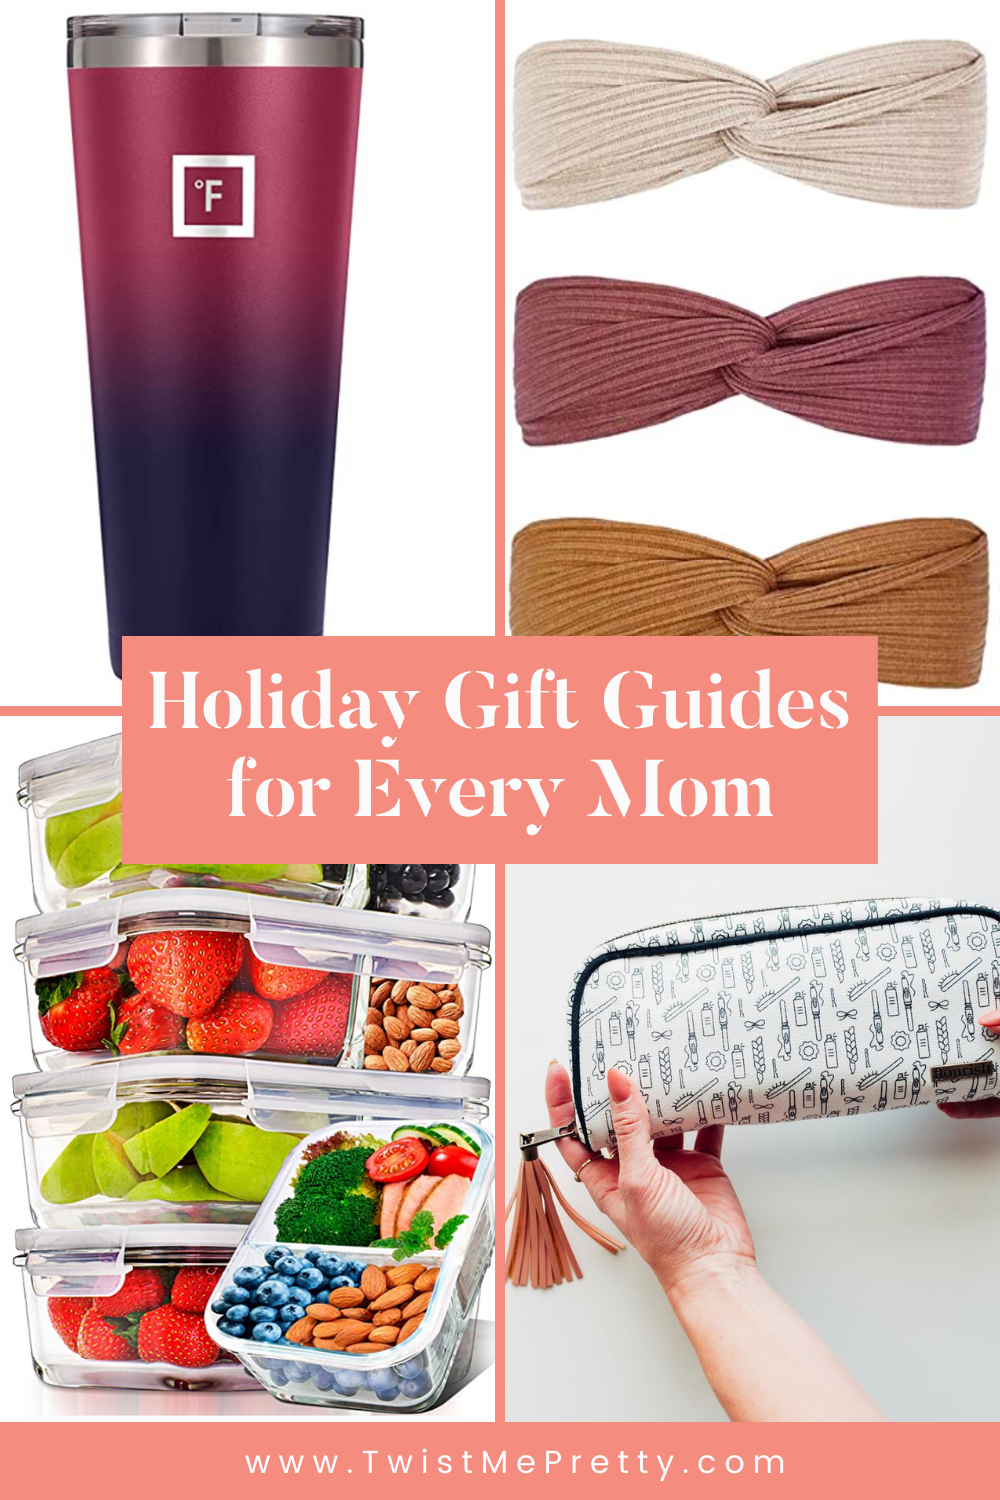 Holiday Gift Guides for every mom www.twistmepretty.com